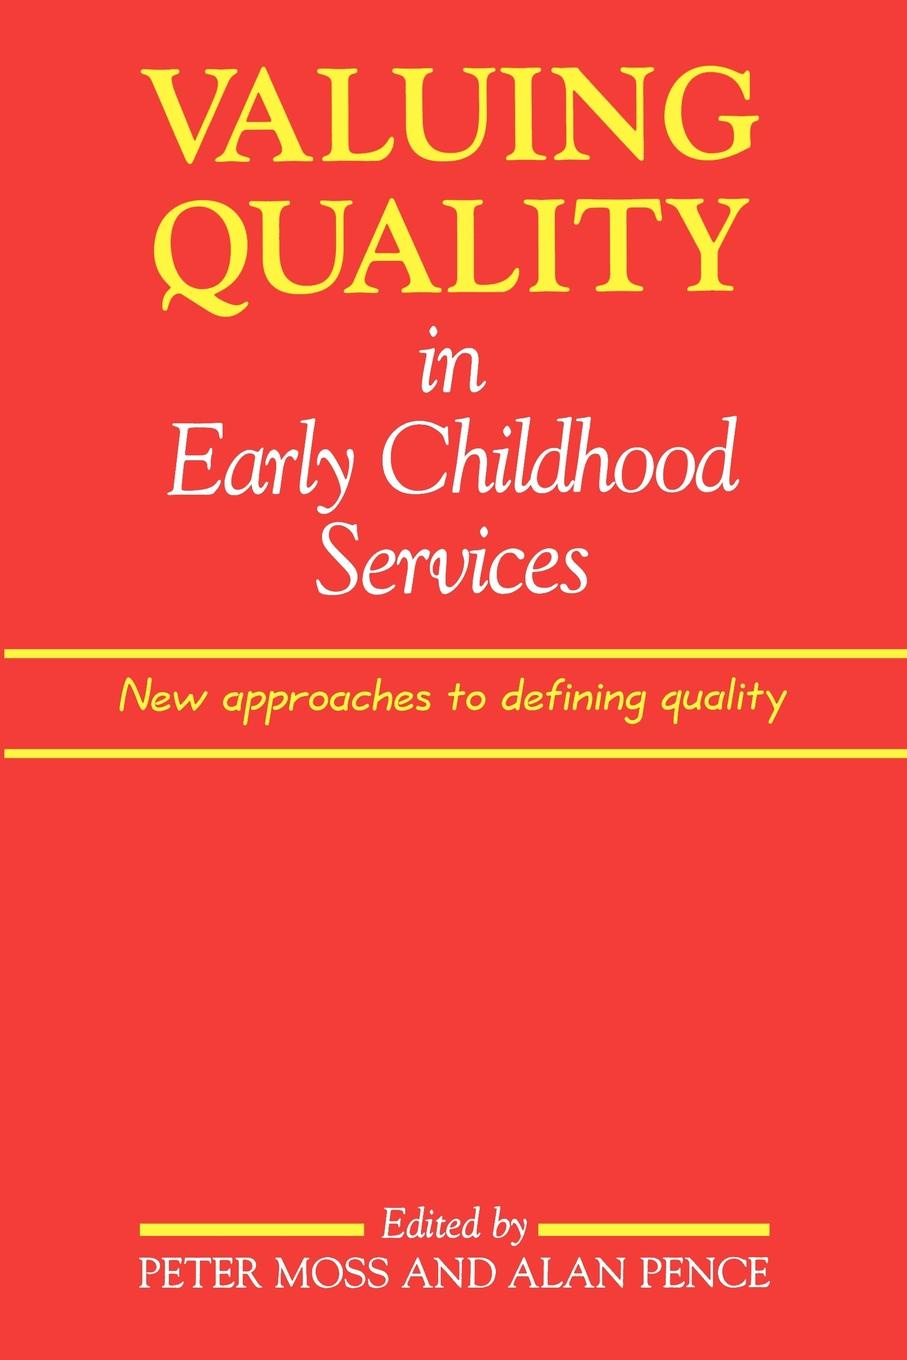 Valuing Quality in Early Childhood Services. New Approaches to Defining